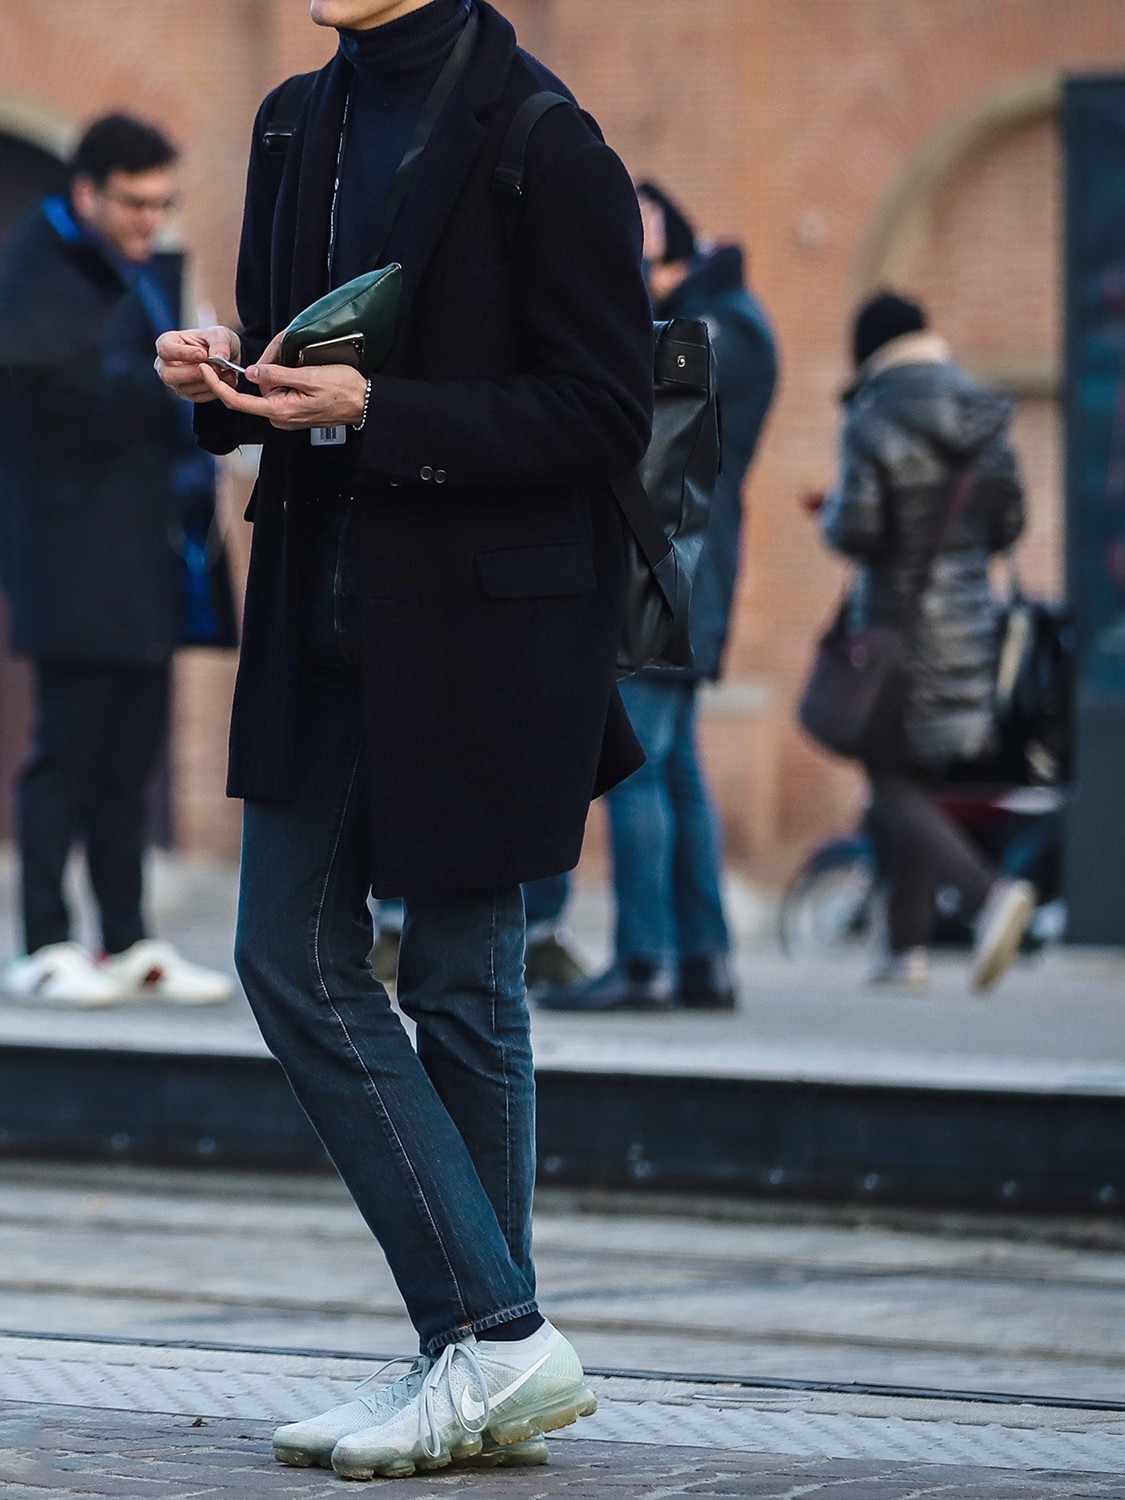 Men's outfit idea for 2021 with navy single-breasted overcoat, navy lightweight rollneck jumper, dark blue jeans, grey trainers / sneakers. Suitable for autumn and winter.